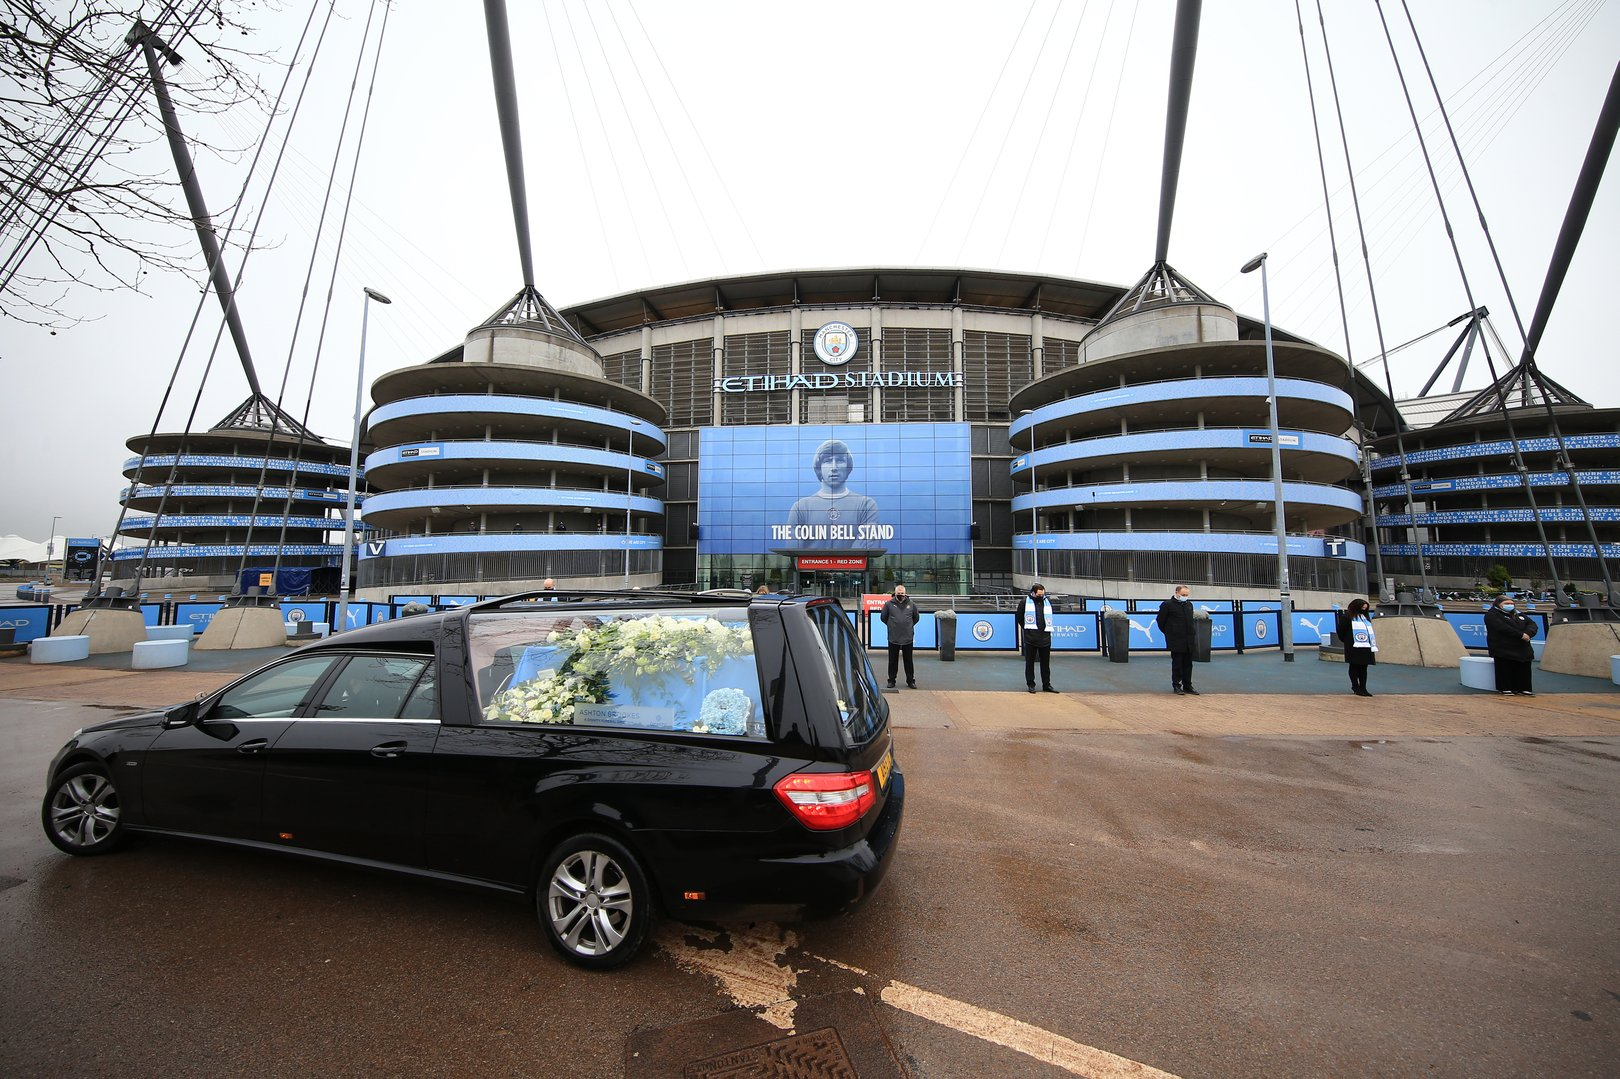 Remembering Colin Bell: Respects paid to City legend